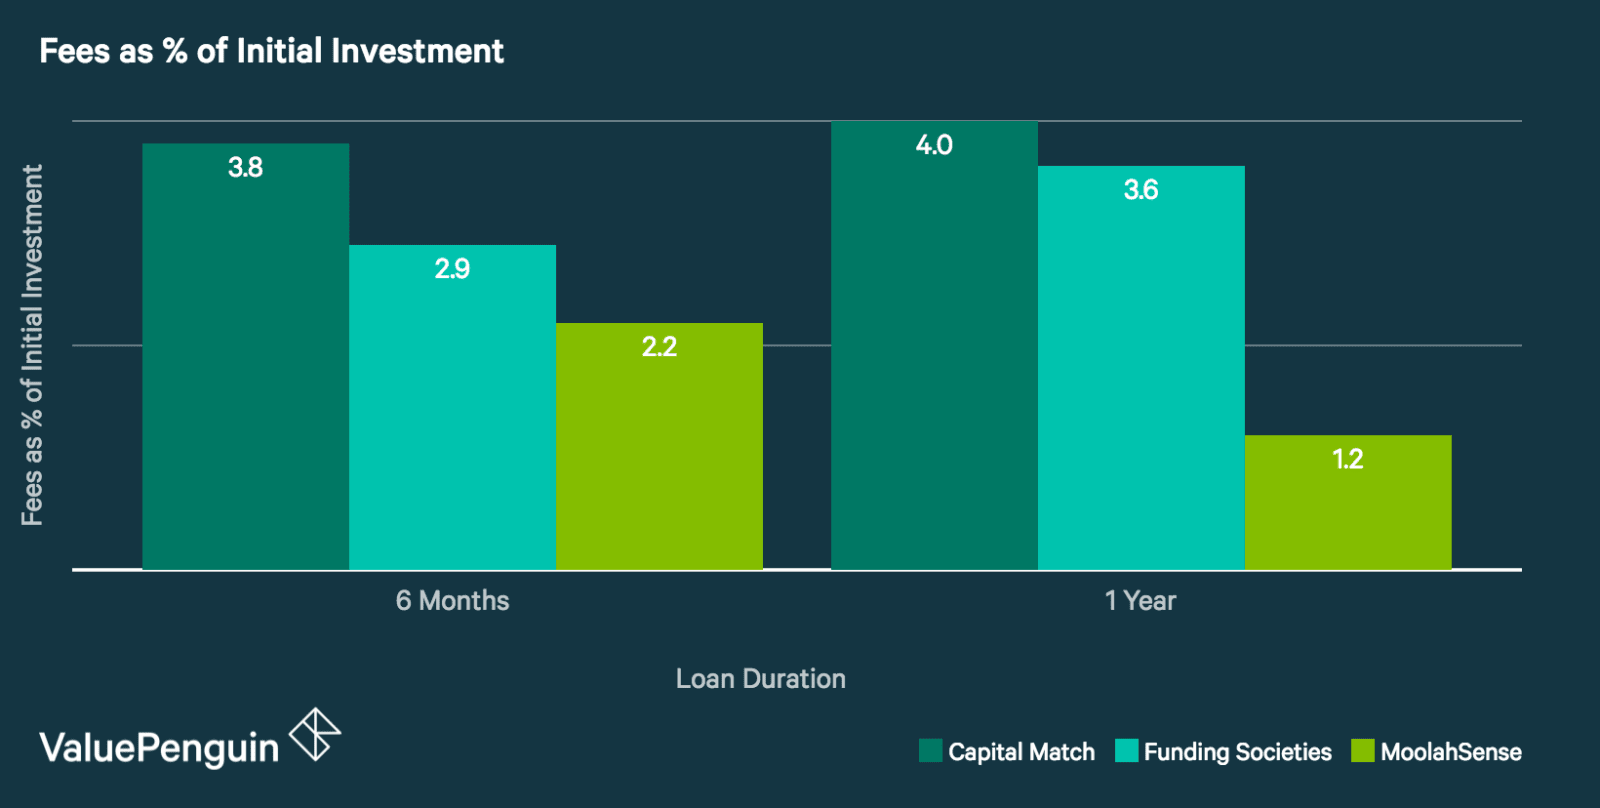 Graph showing Investor service fees as a percentage of initial investment, assuming annualized returns of 20%. Over 6 months and 12 months, Capital Match has the highest fee ratio